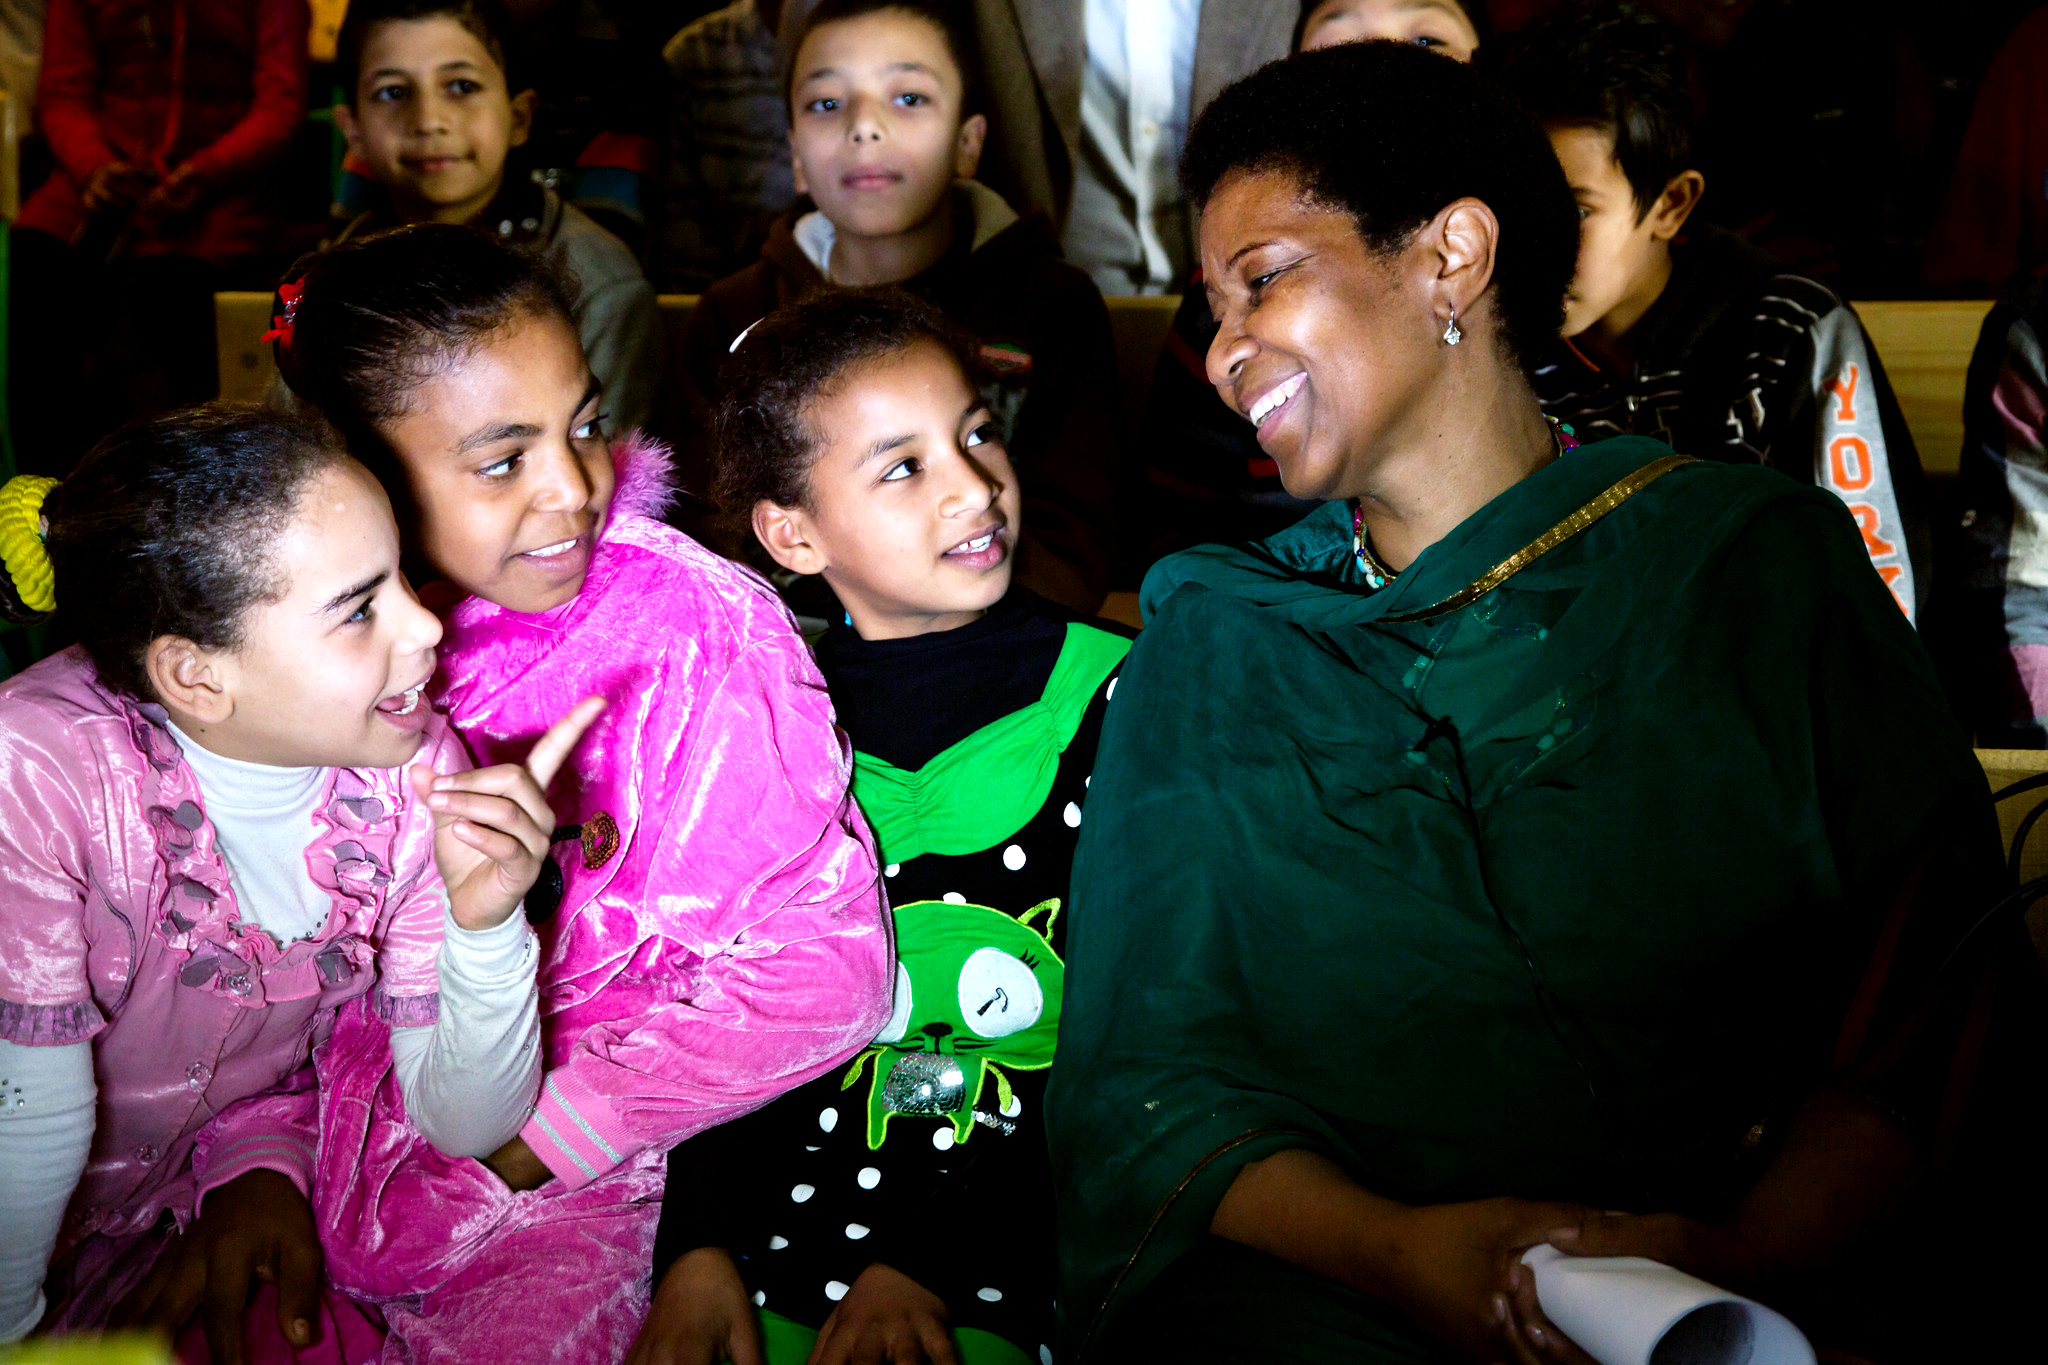 Phumzile Mlambo-Ngcuka laughs with a group of young girls.